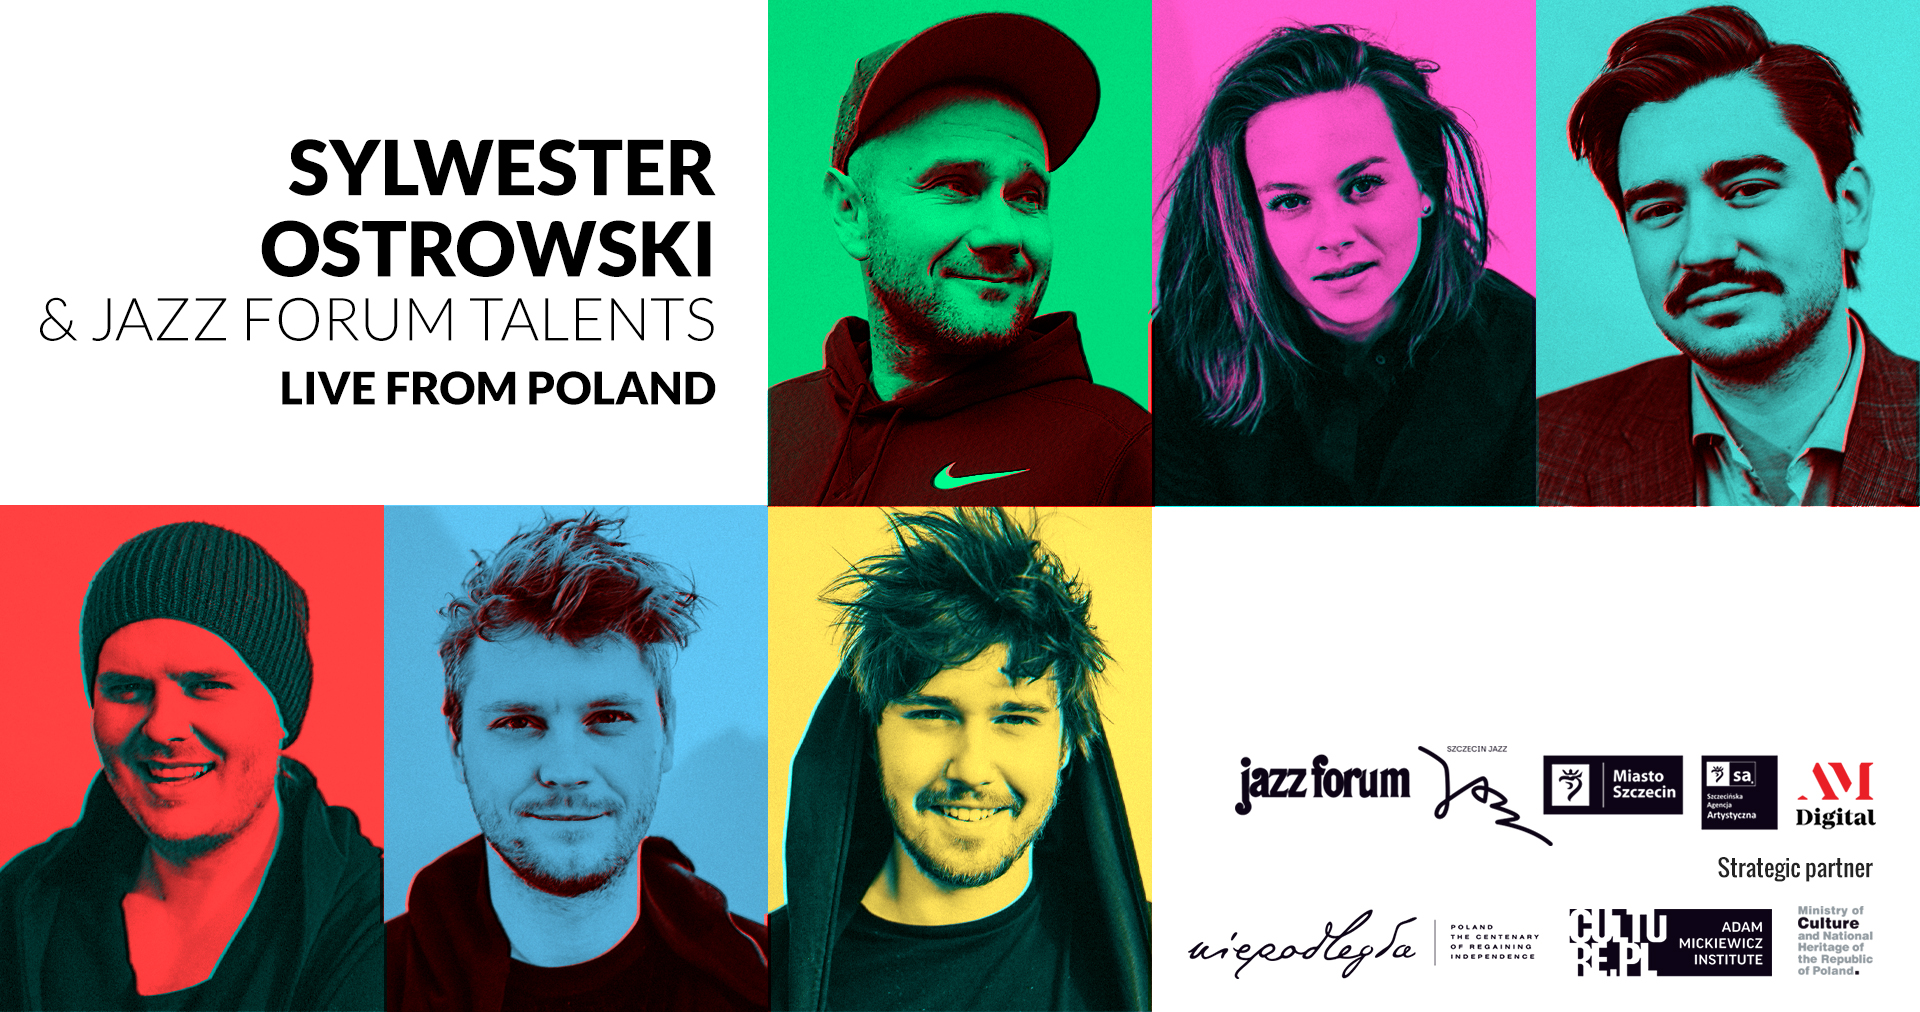 JAZZ NEWS: JazzCorner Presents: Sylwester Ostrowski & JAZZ FORUM Talents from Poland 11/5